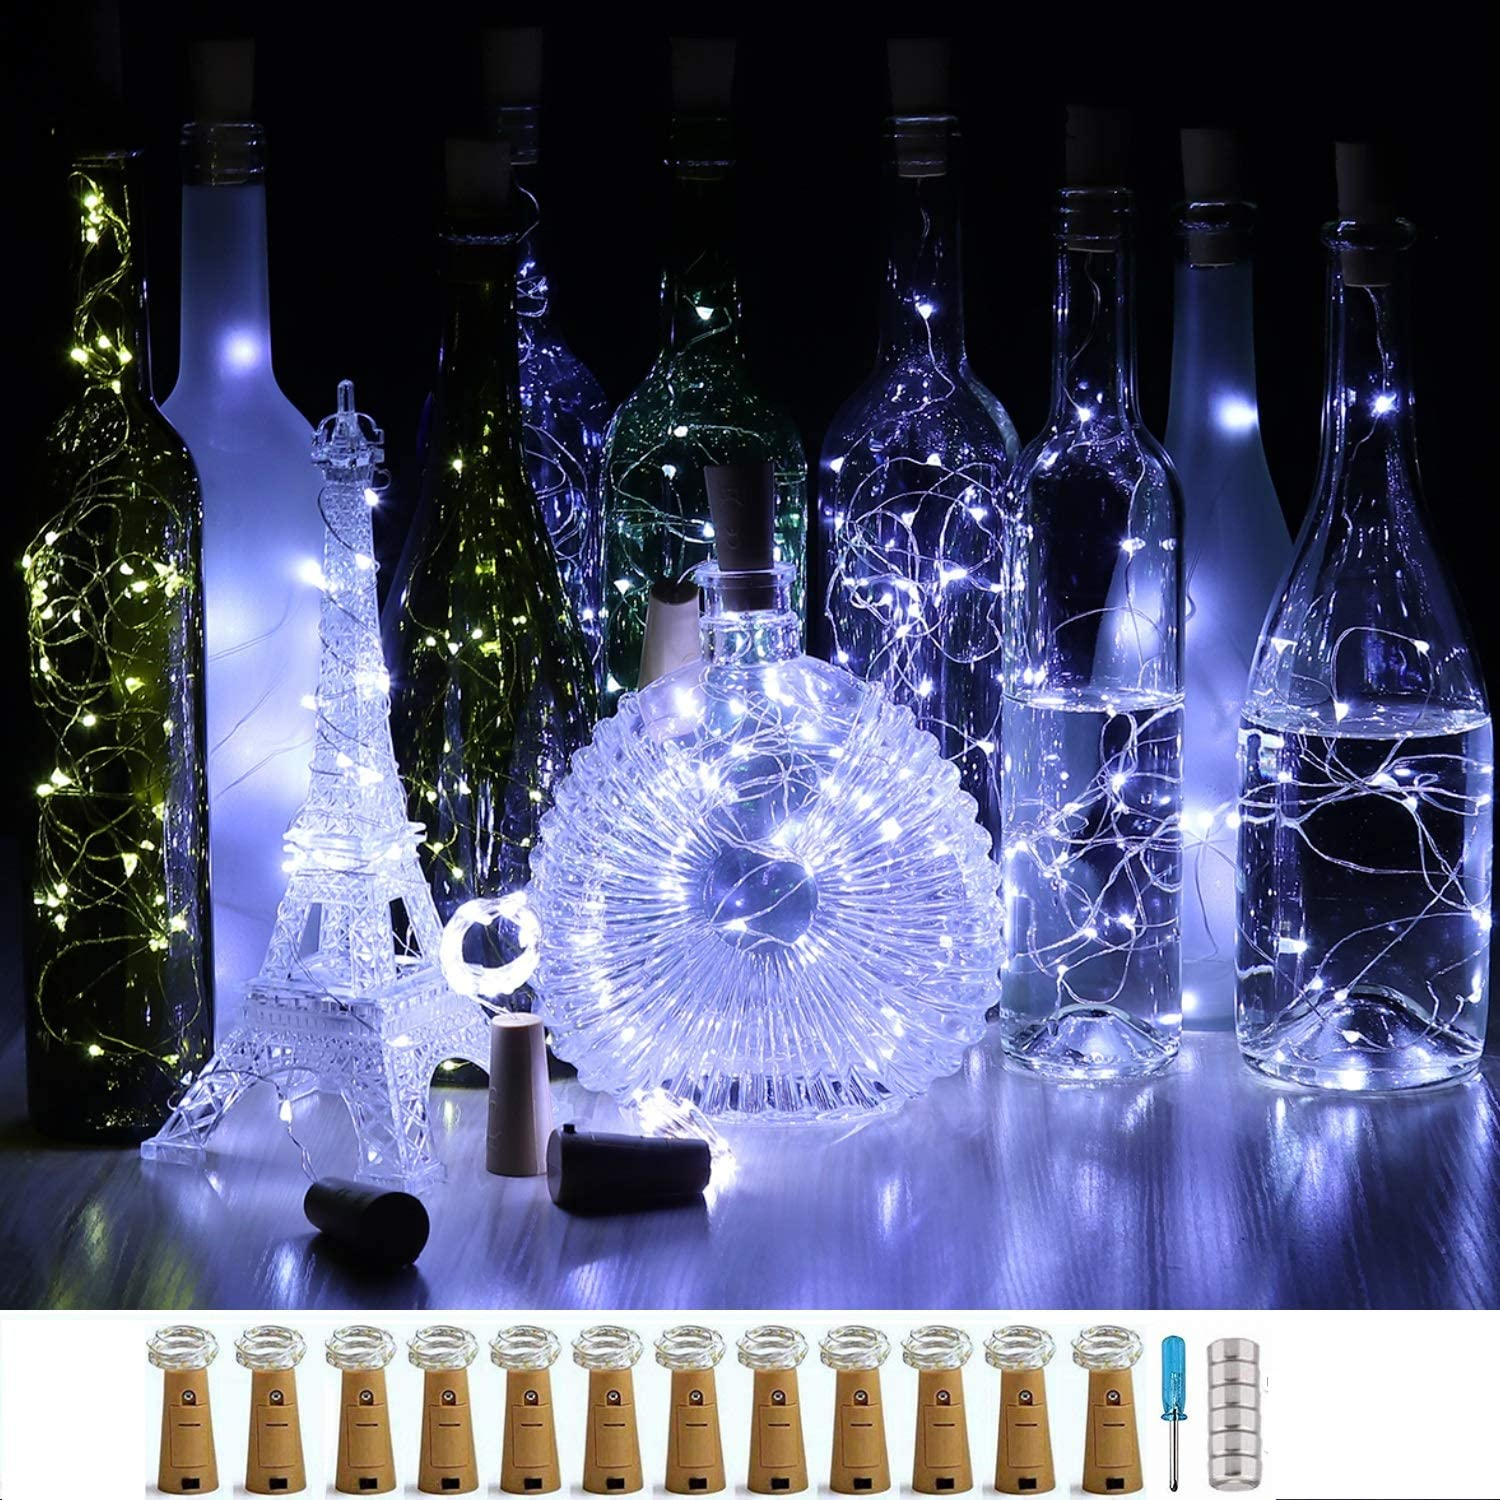 CUUCOR Cork Wine Bottle Lights 12 Max 52% OFF LED Operated F Battery 4 years warranty Pack 20